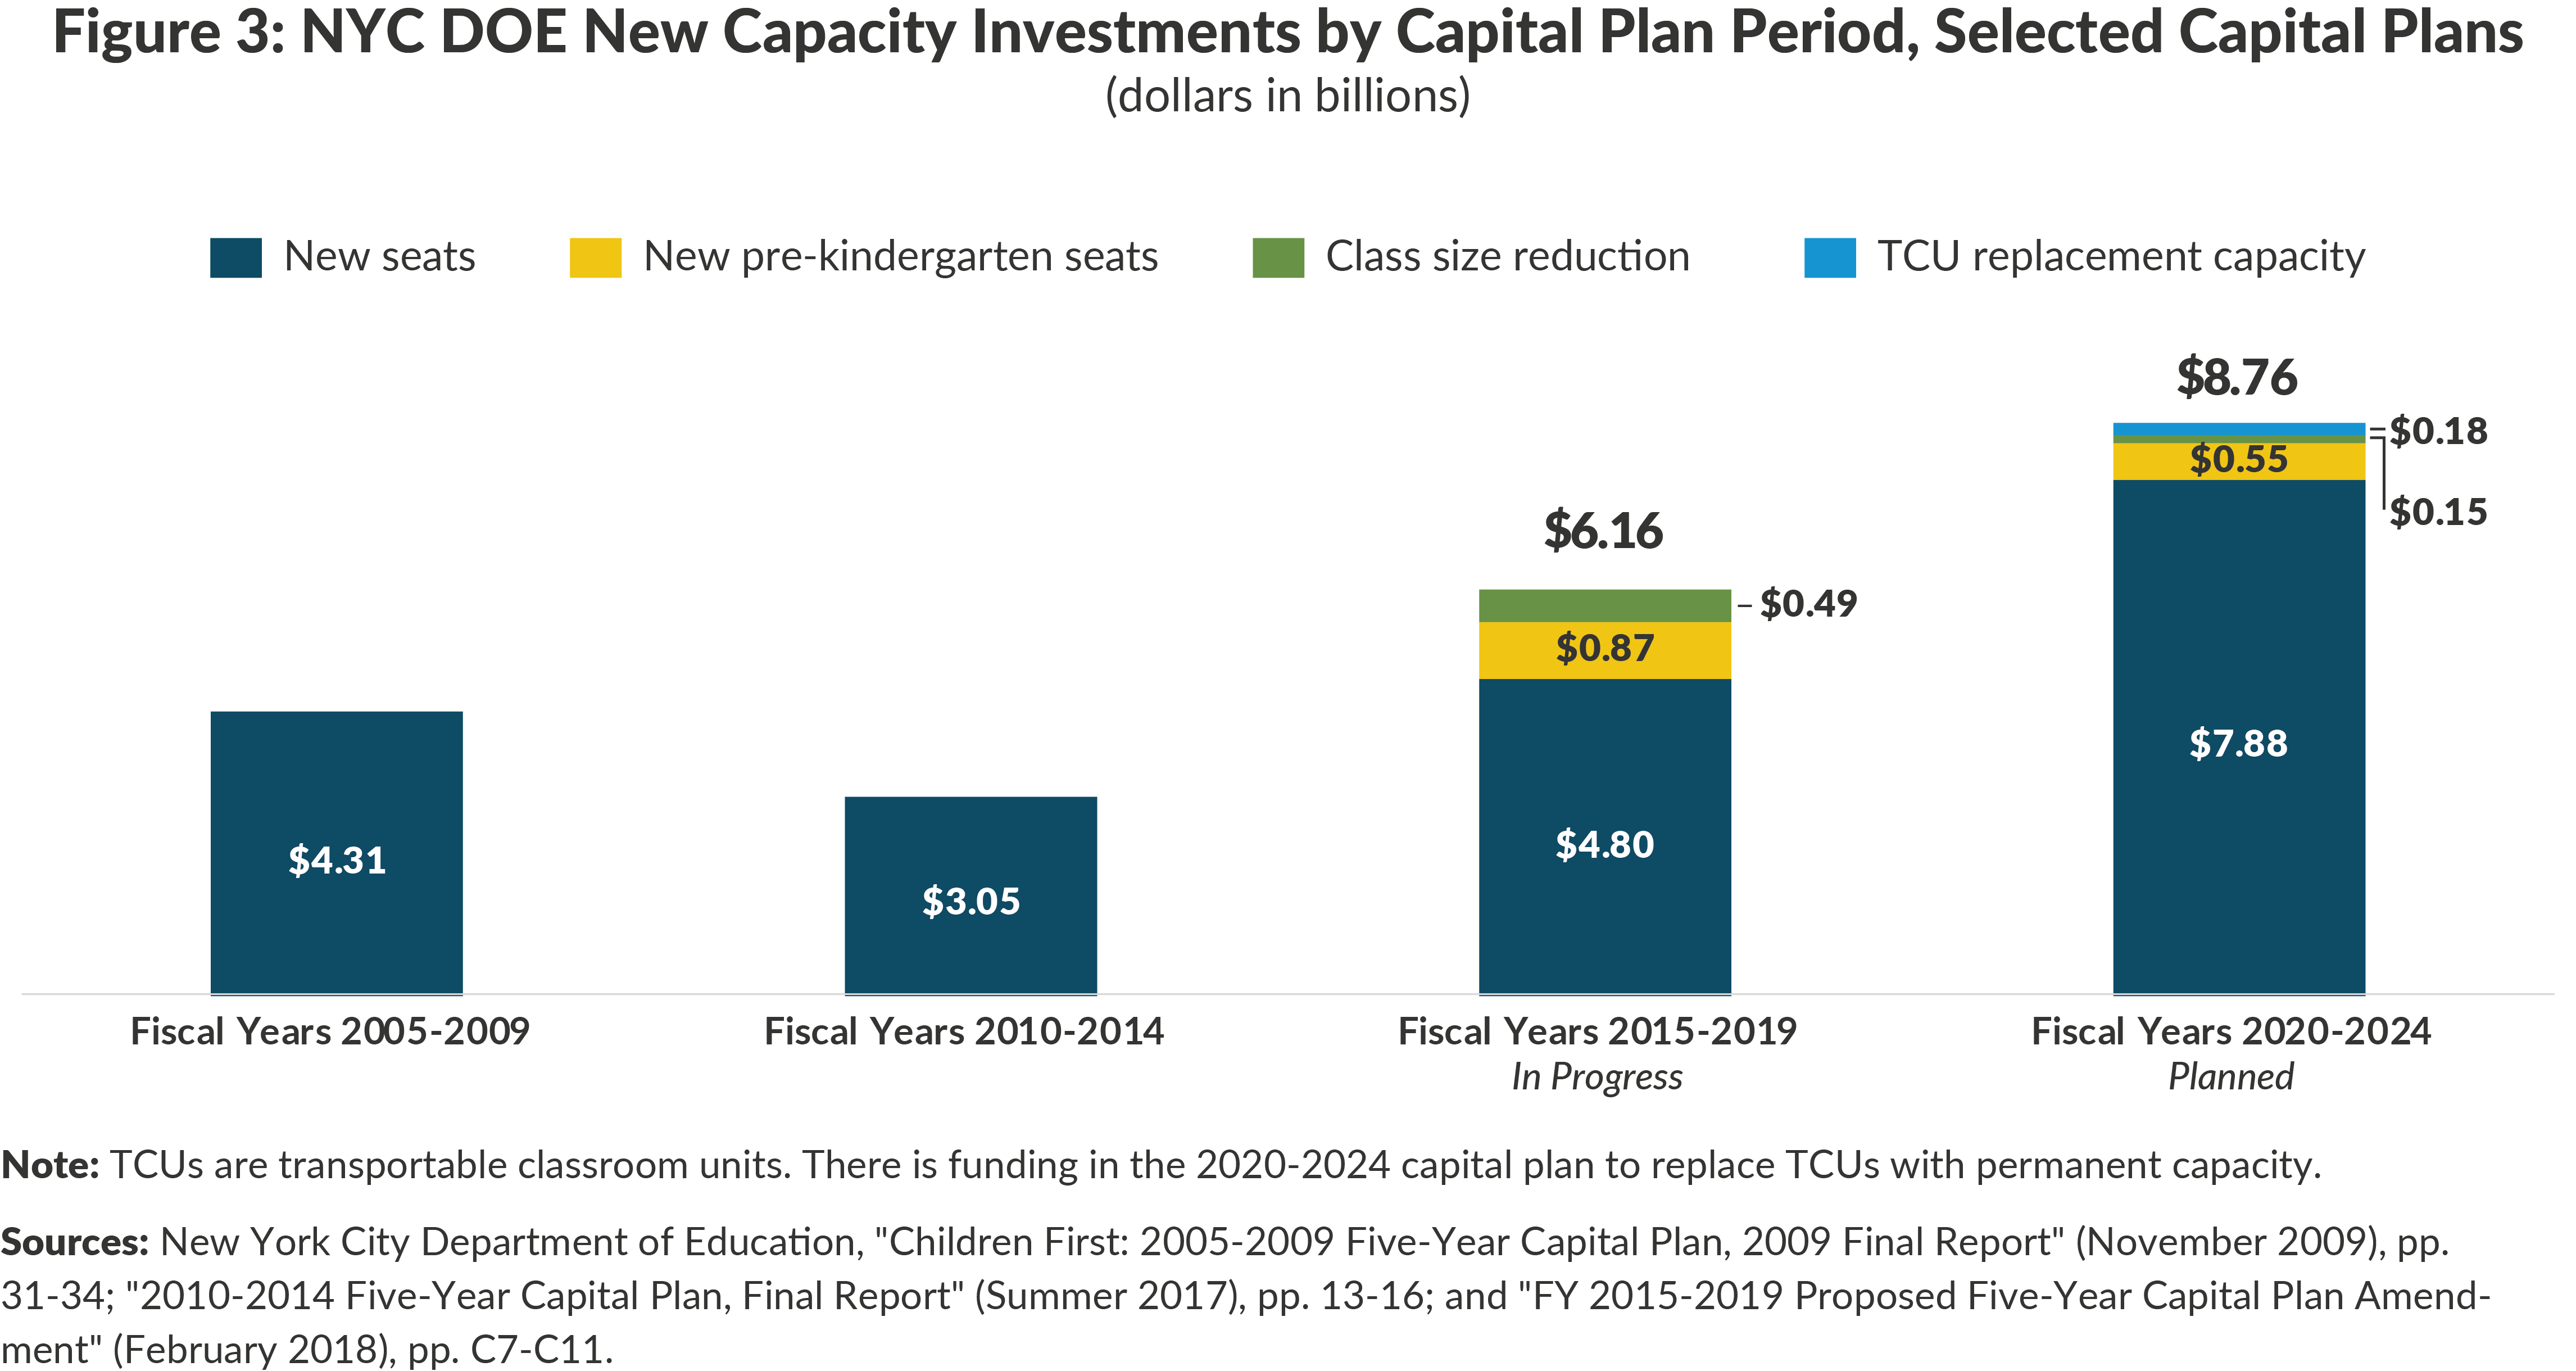 Figure 3: NYC DOE New Capacity Investments by Capital Plan Period, Selected Capital Plans